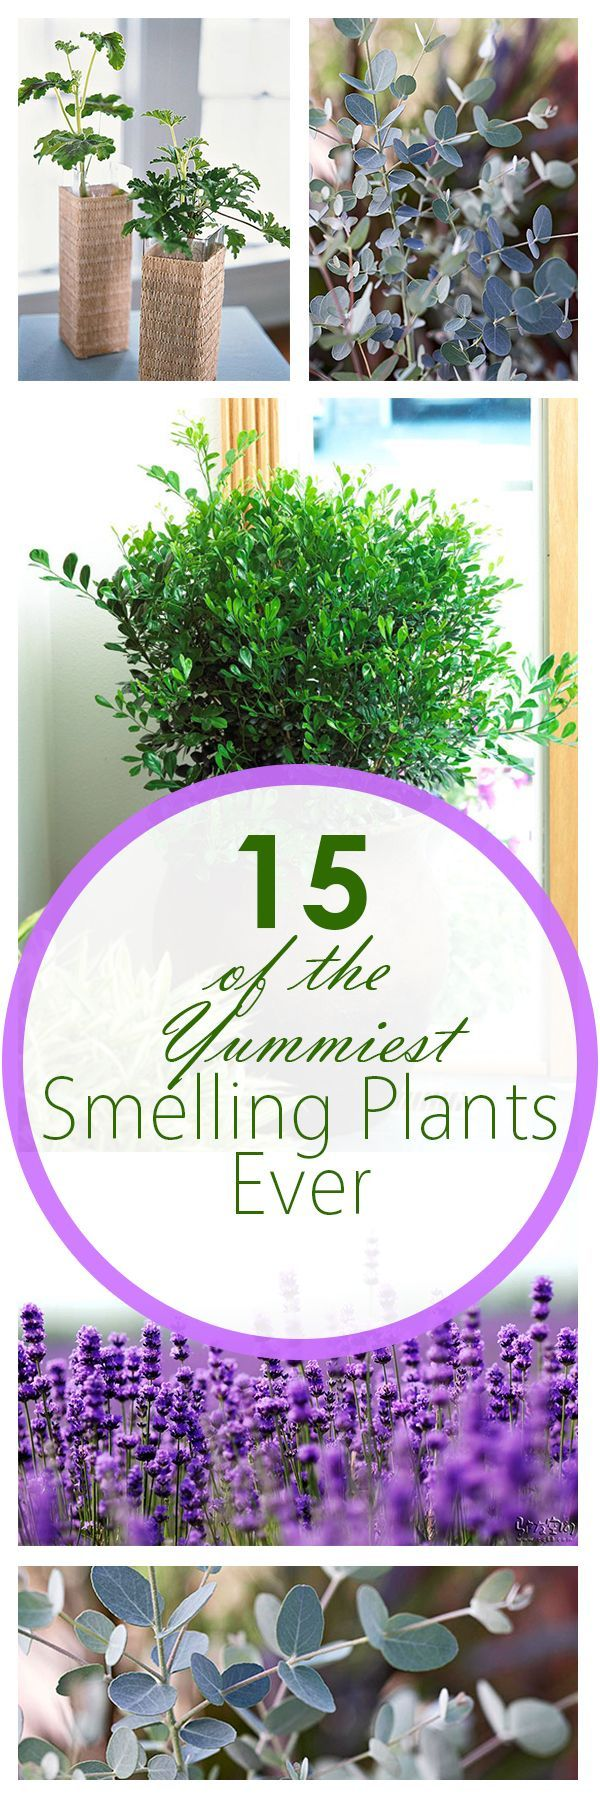 15 of the Yummiest Smelling Plants Ever